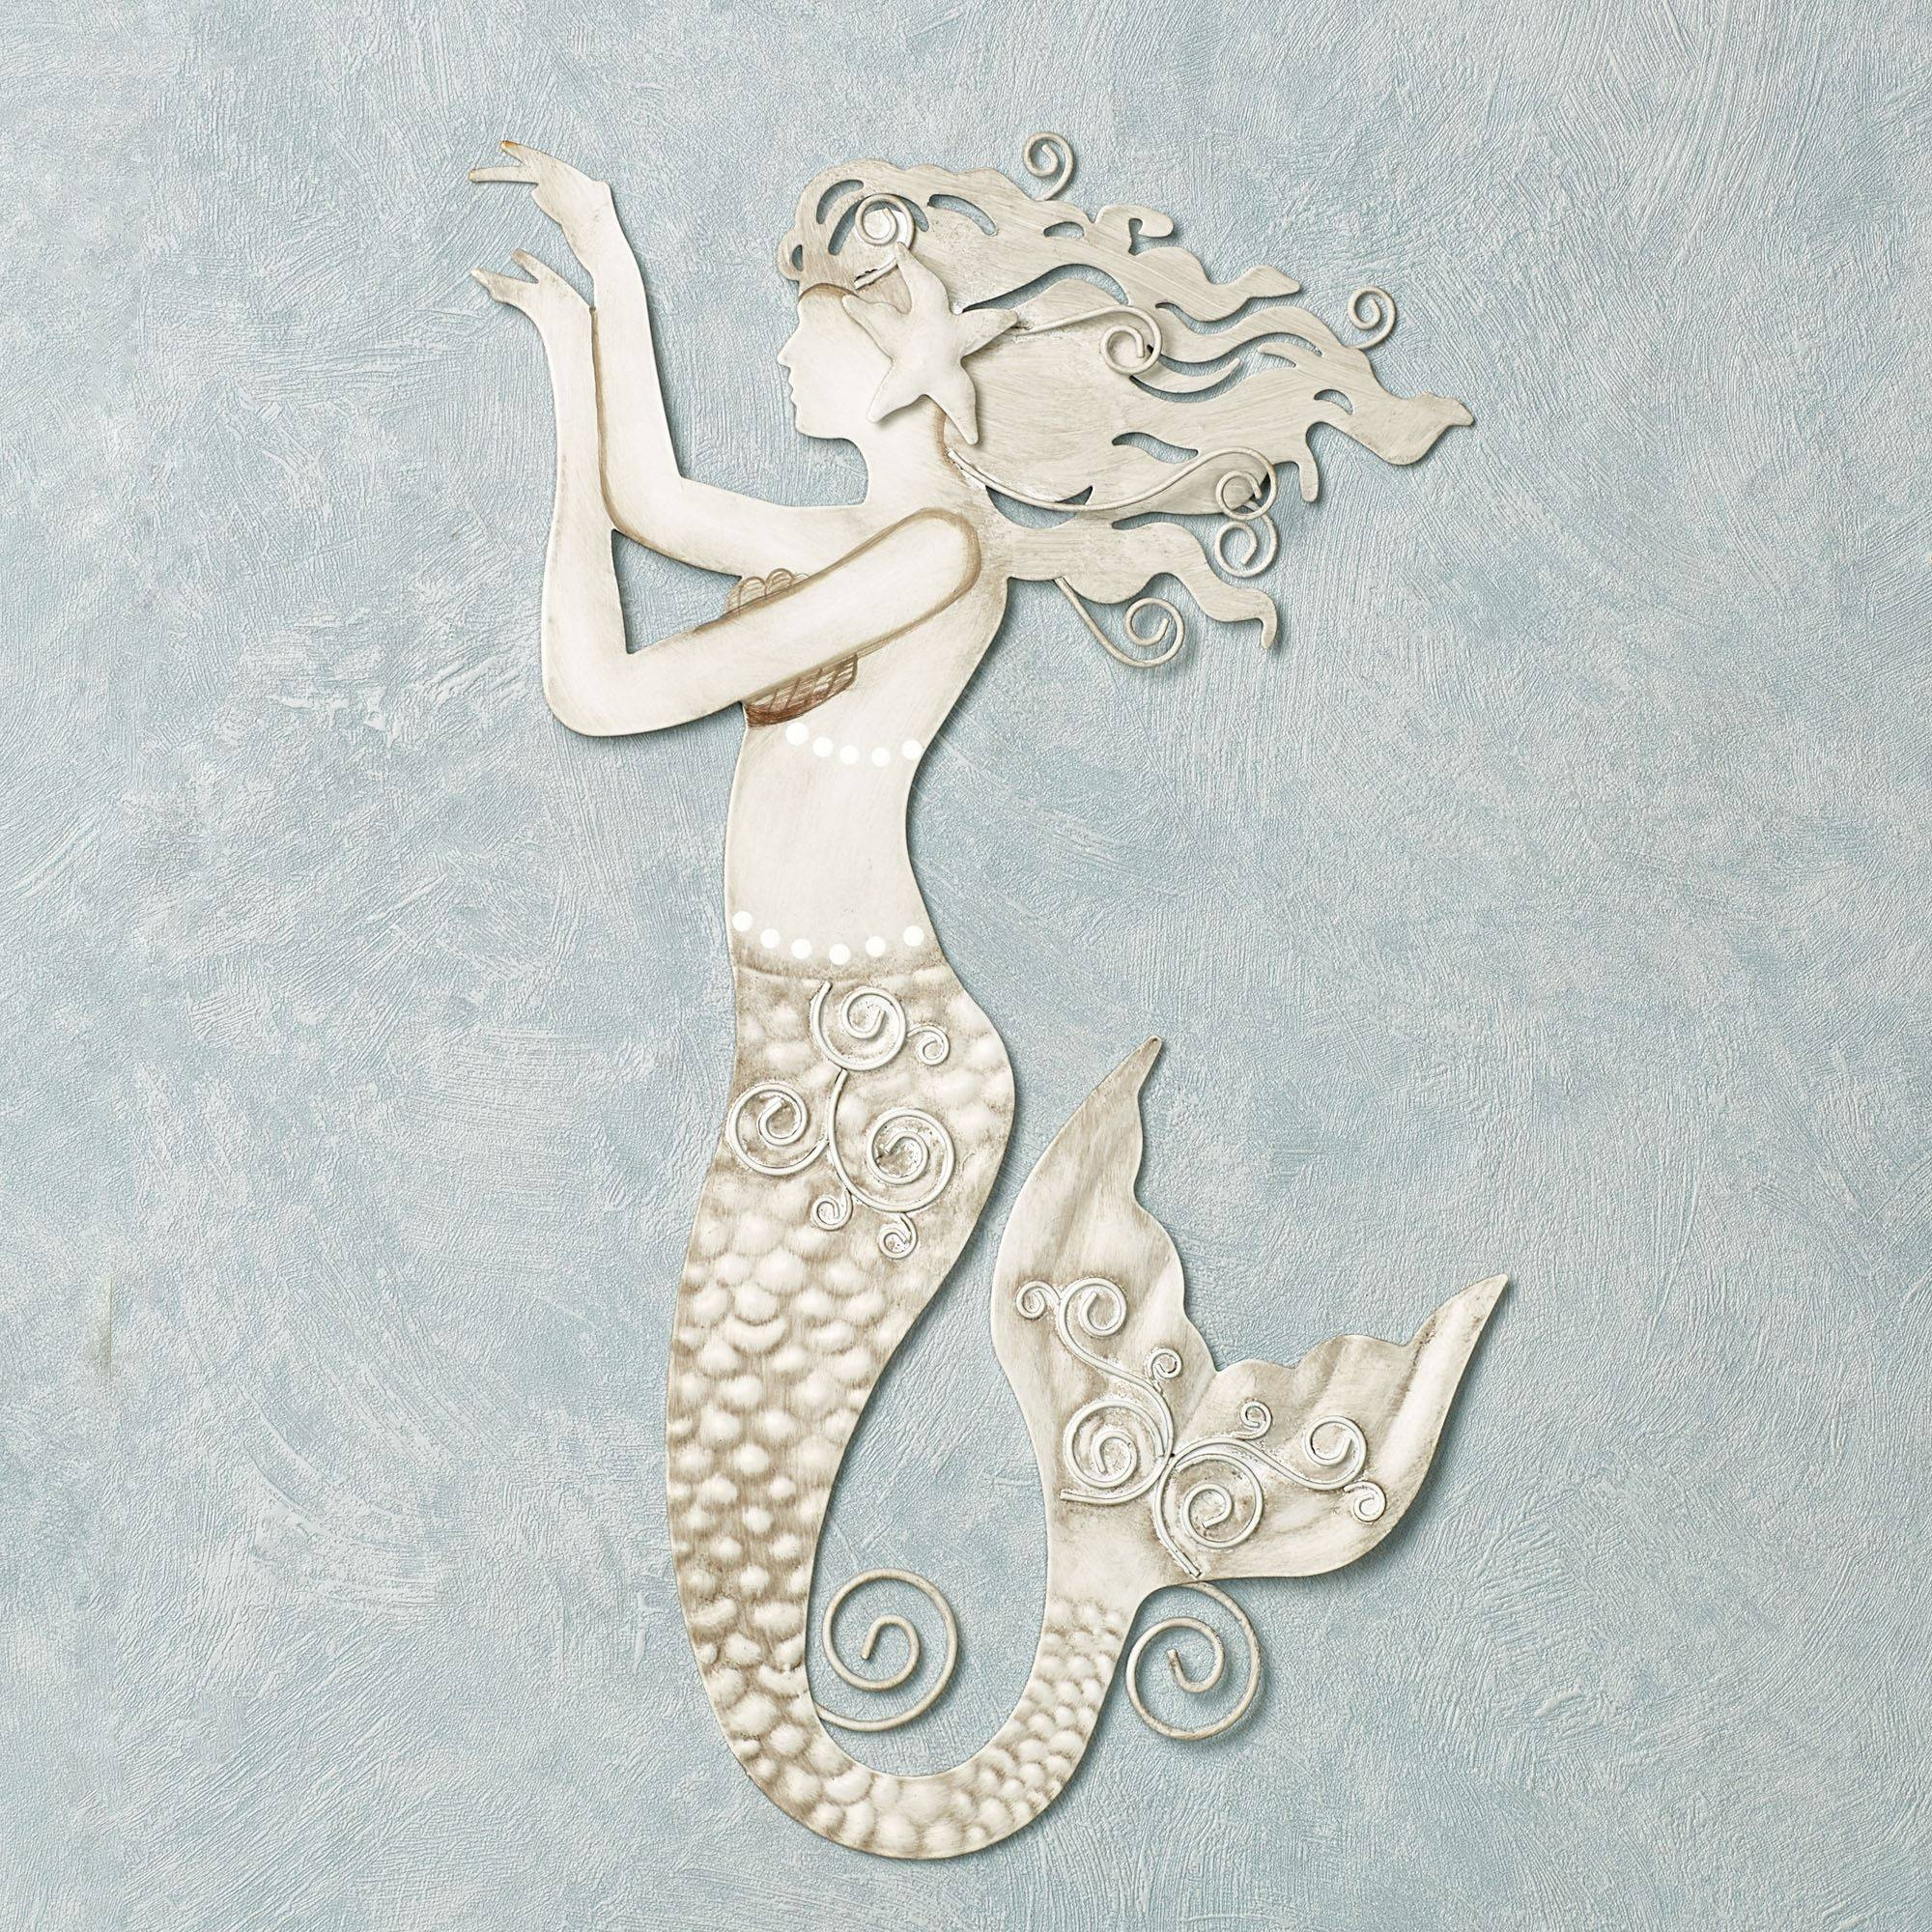 Ocean Mermaid Coastal Home Accents | Touch Of Class In Newest Mermaid Metal Wall Art (View 20 of 20)